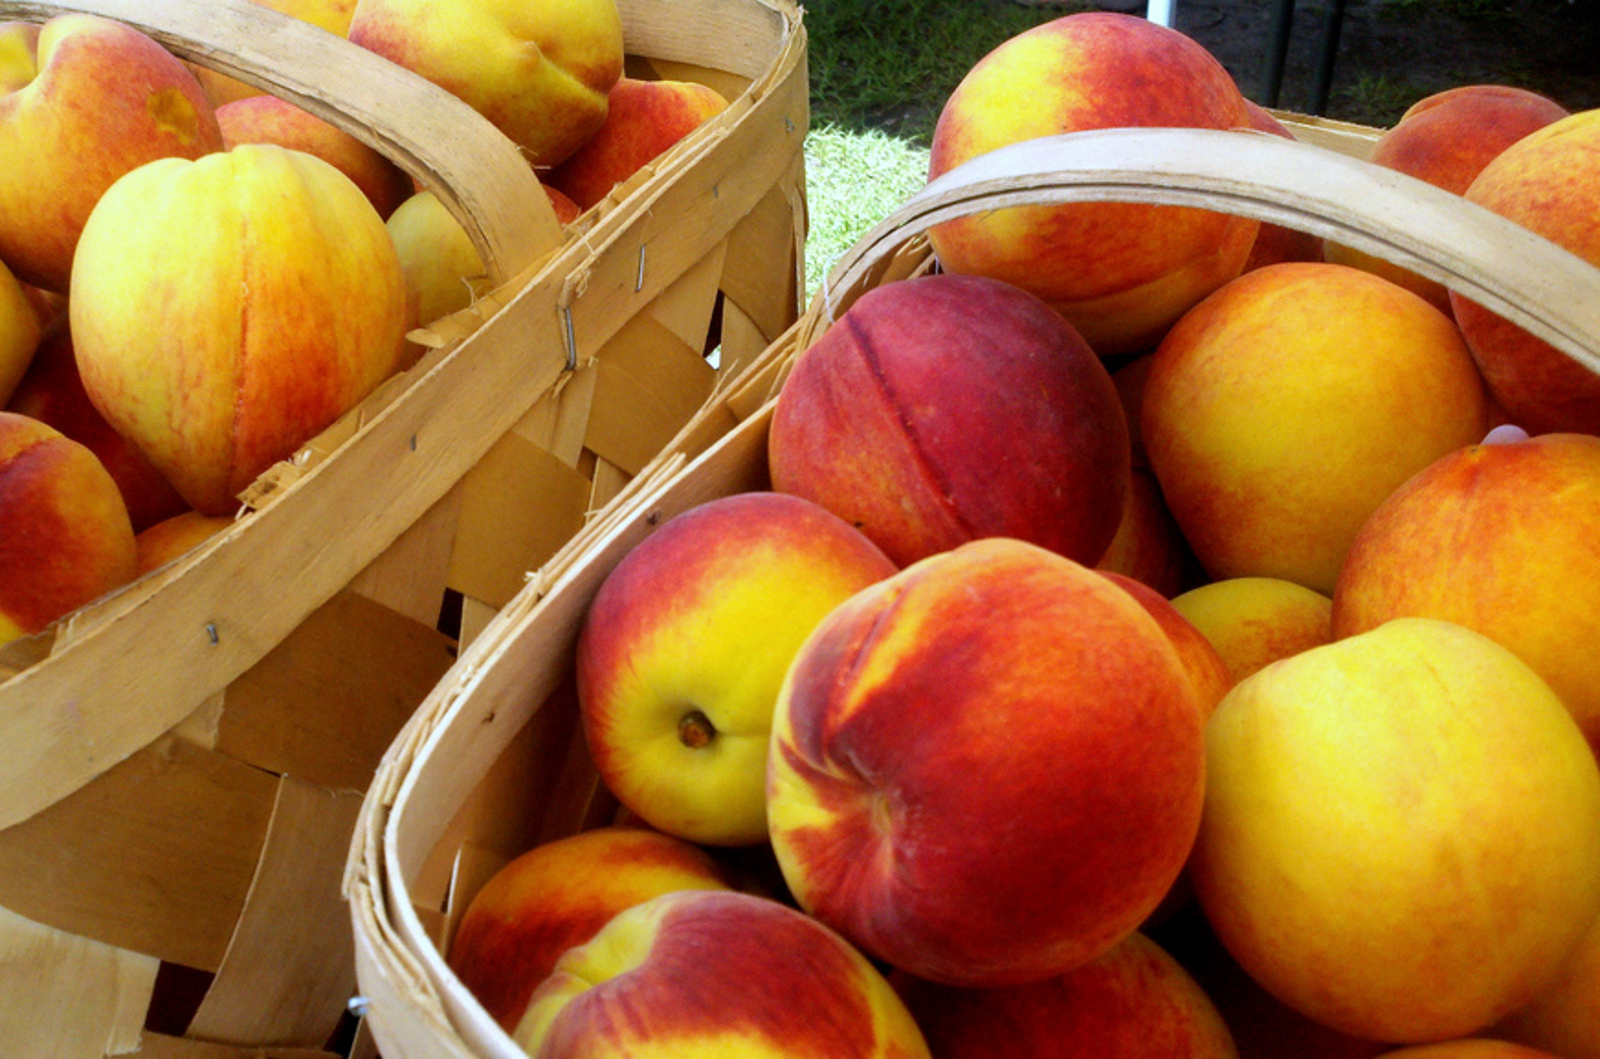 Ways To Eat the Delicious Summer Produce That's Soon To Be In Season